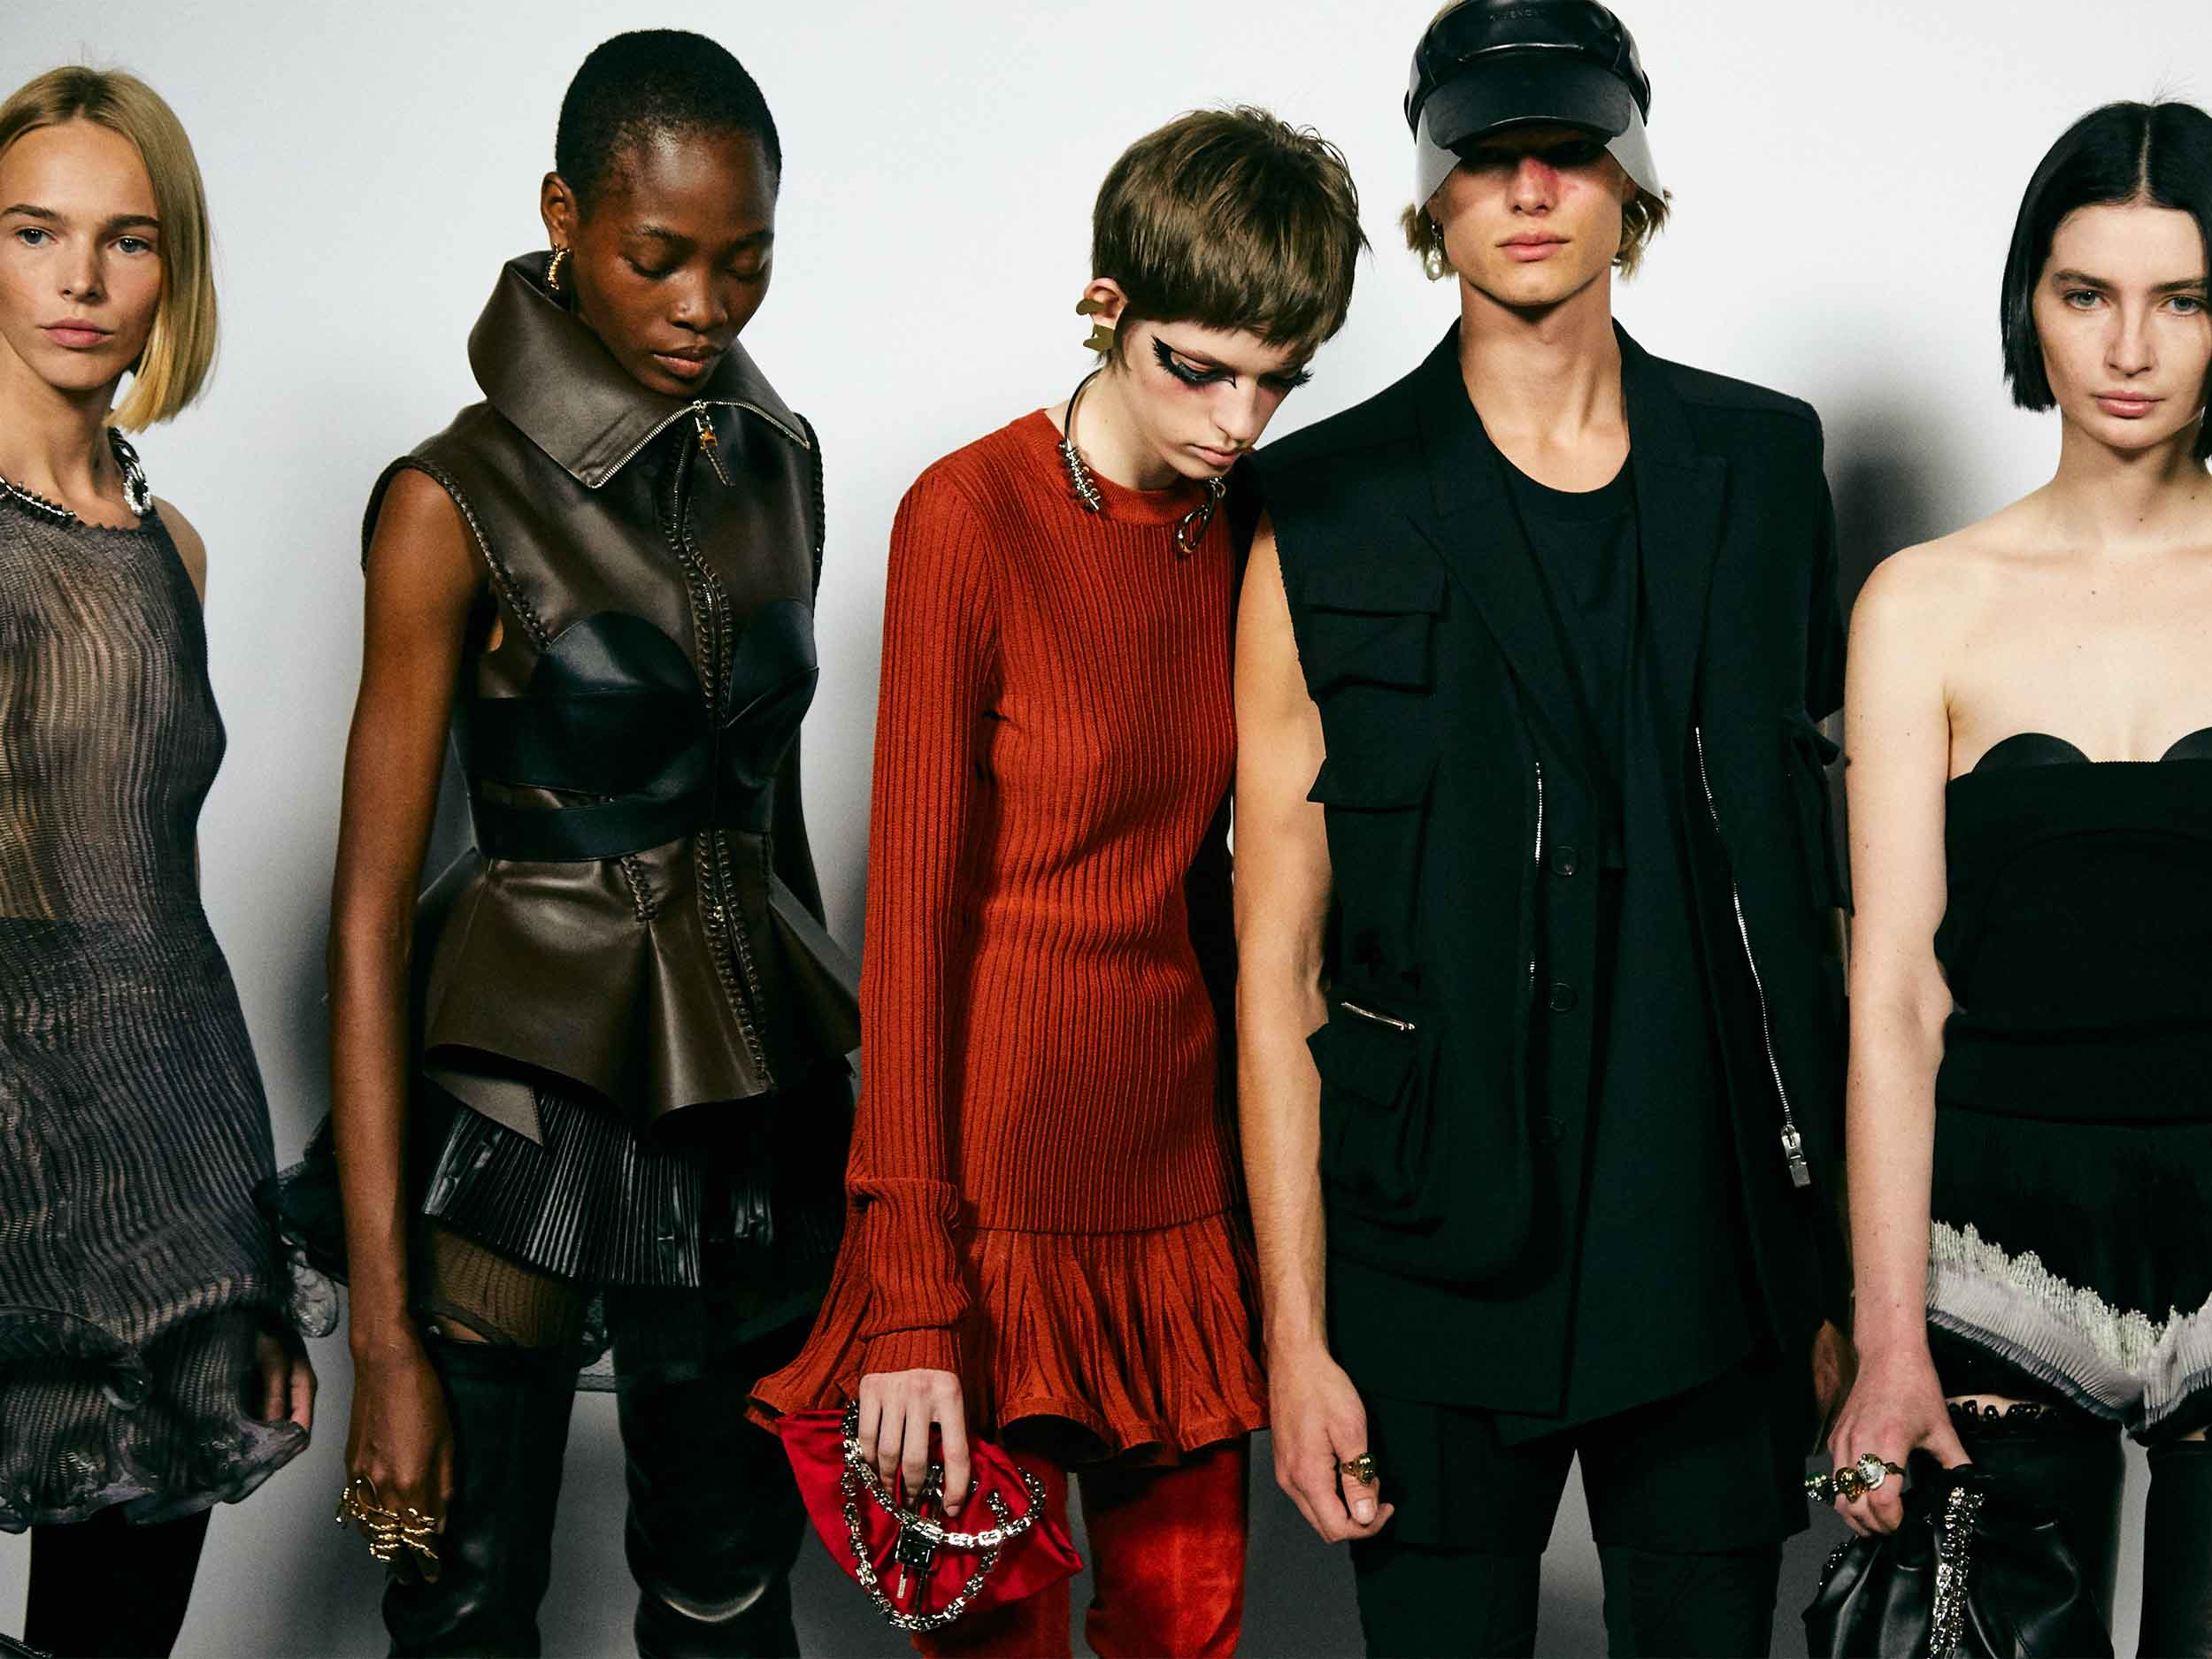 Givenchy embraces the gestural, adapting timeless tailoring to a new age